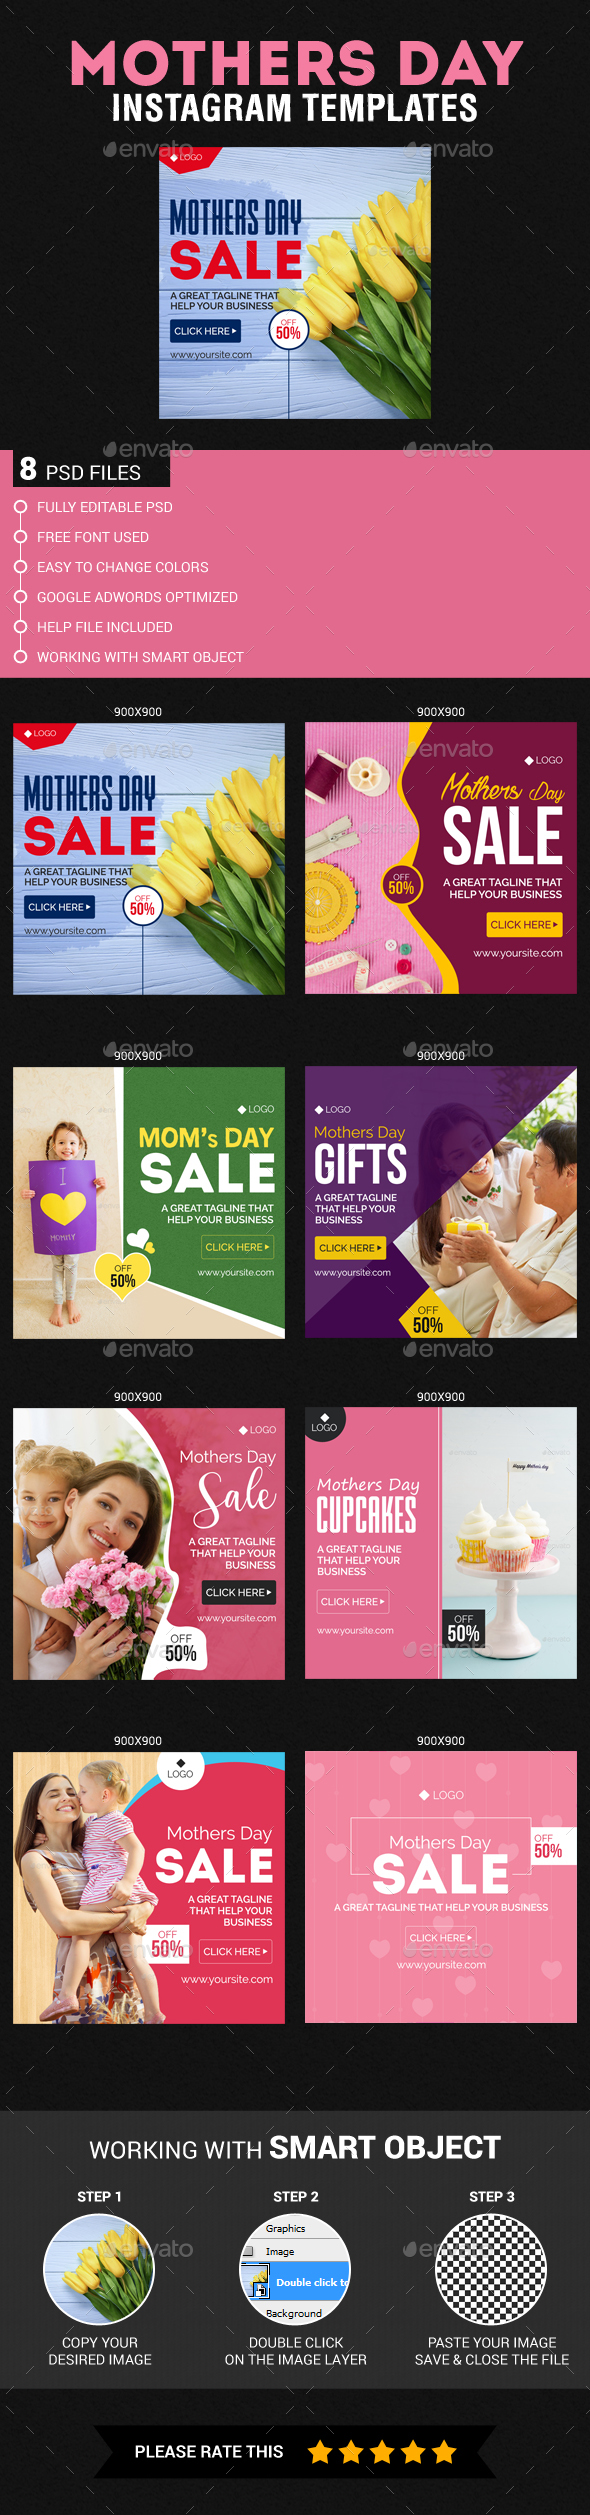 Mothers Day Instagram Templates - Banners & Ads Web Elements